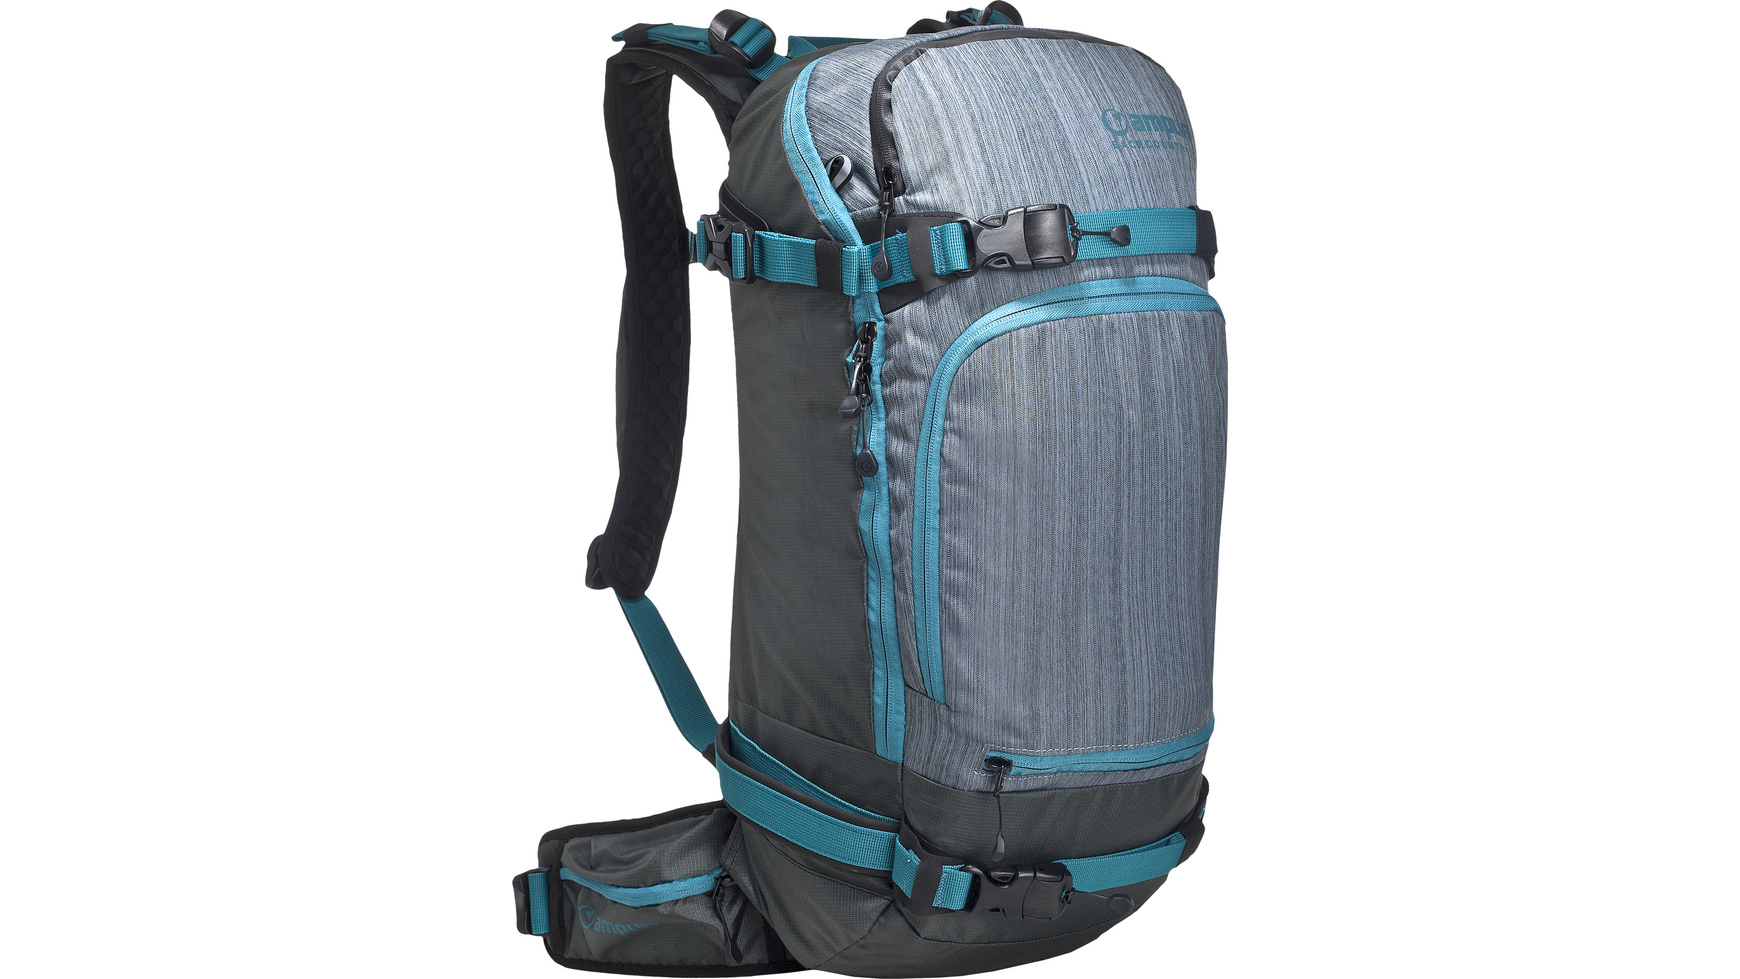 282017003-amplifi_backcountry27_ultramarinefront-main